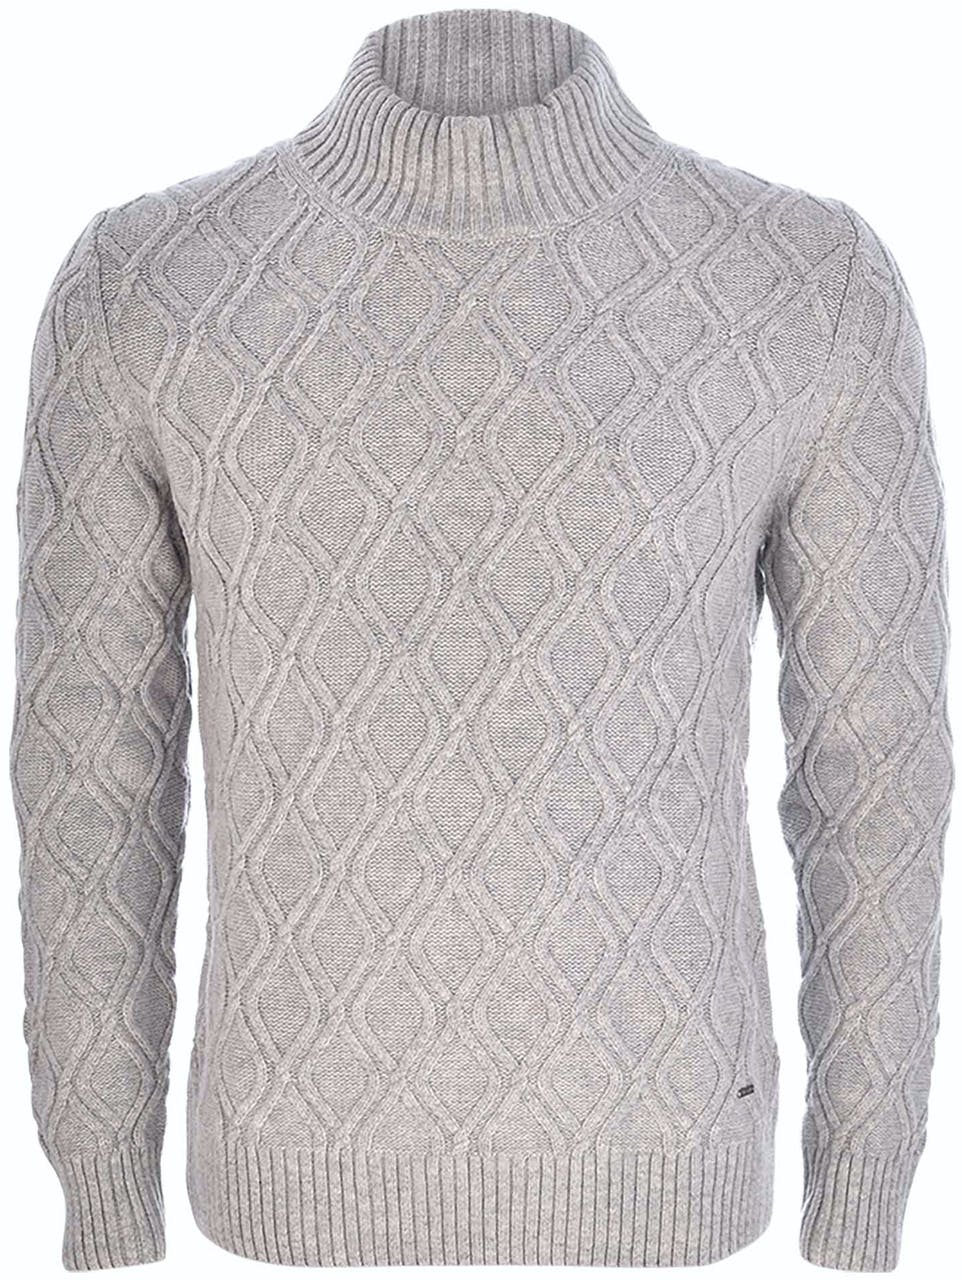 Strickpullover - Regular Fit - Nando